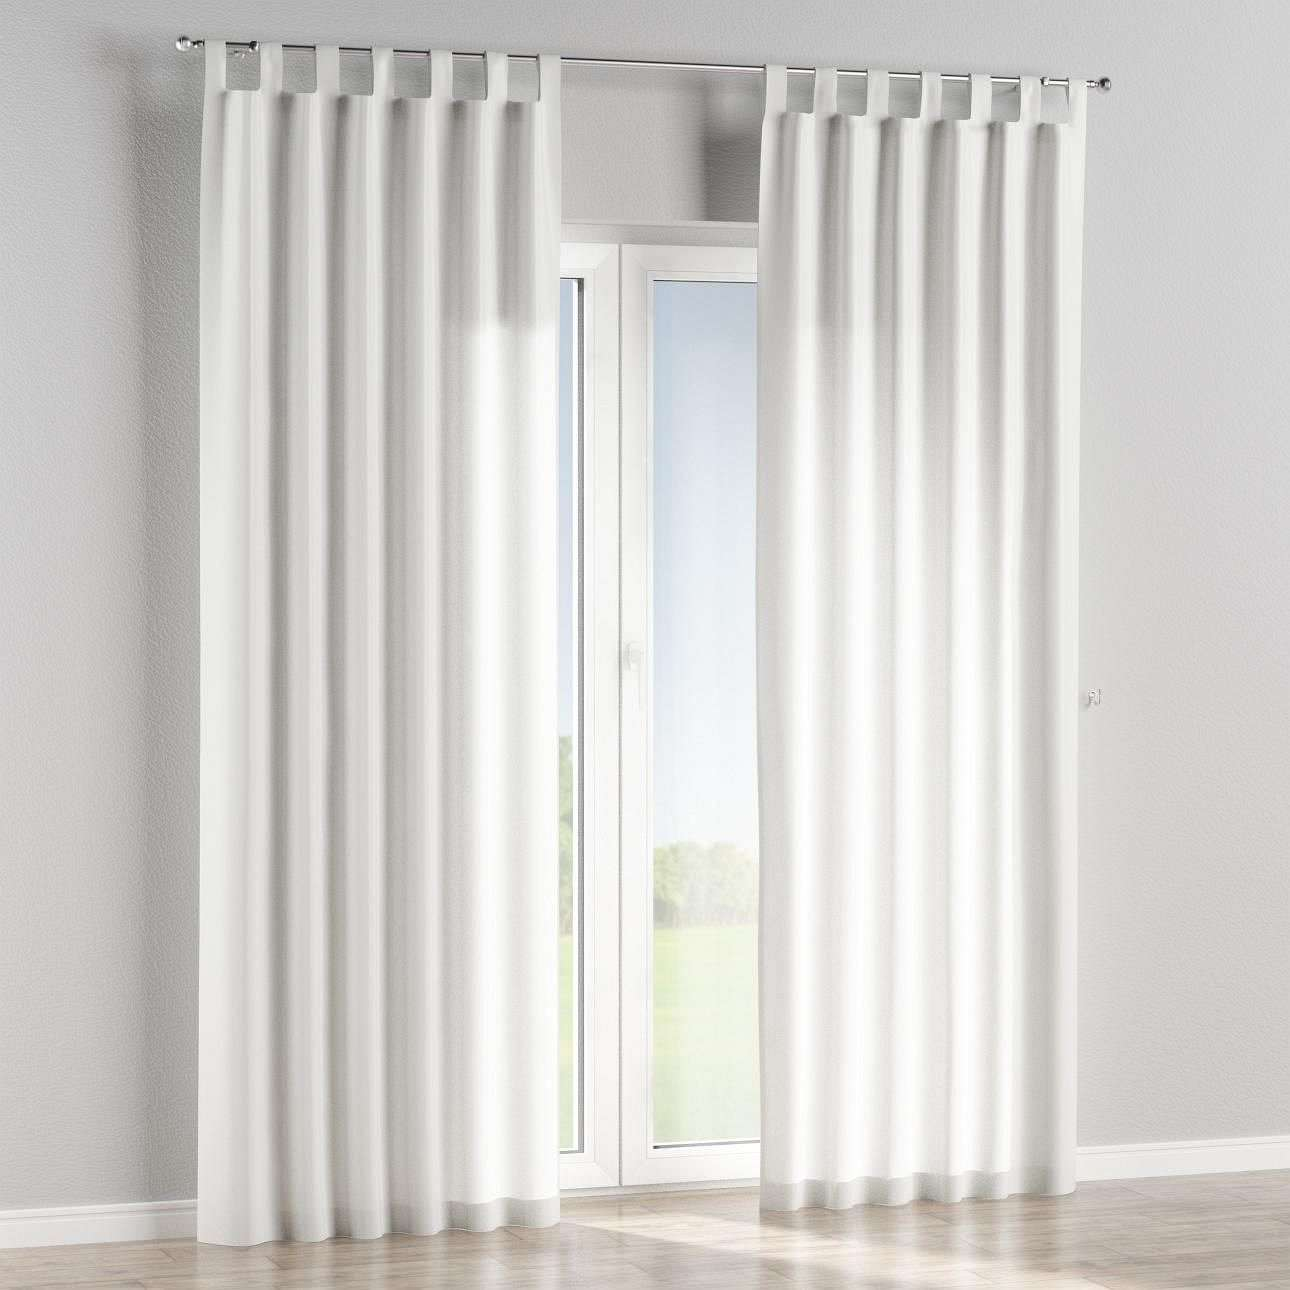 Tab top lined curtains in collection Christmas , fabric: 630-21